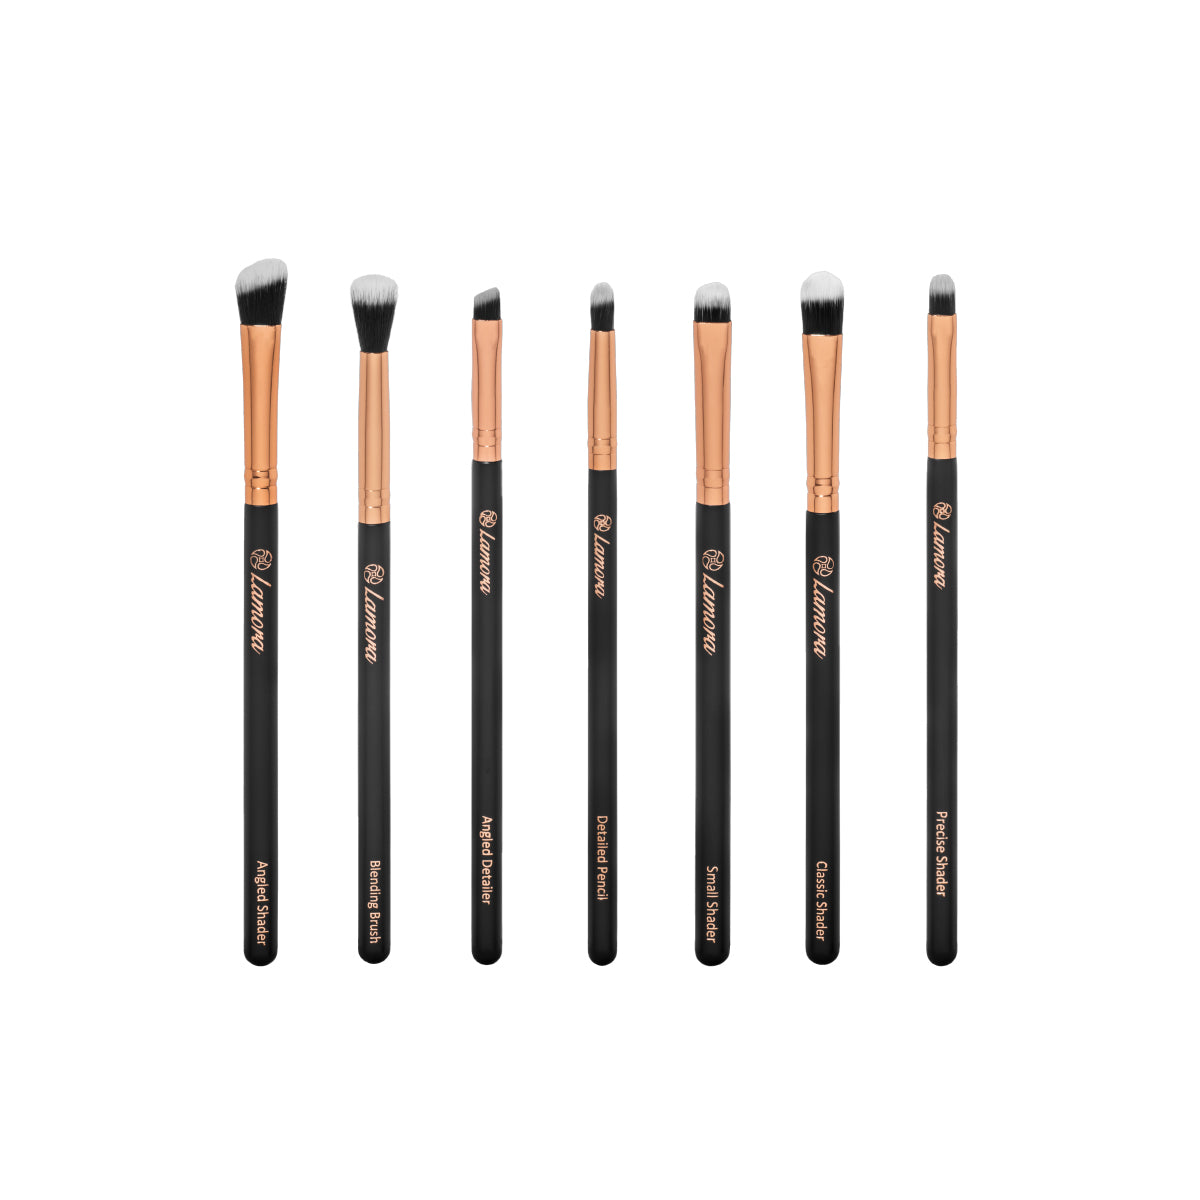 Eyeshadow Brush Set from Lamora Beauty in Rose Gold and Black